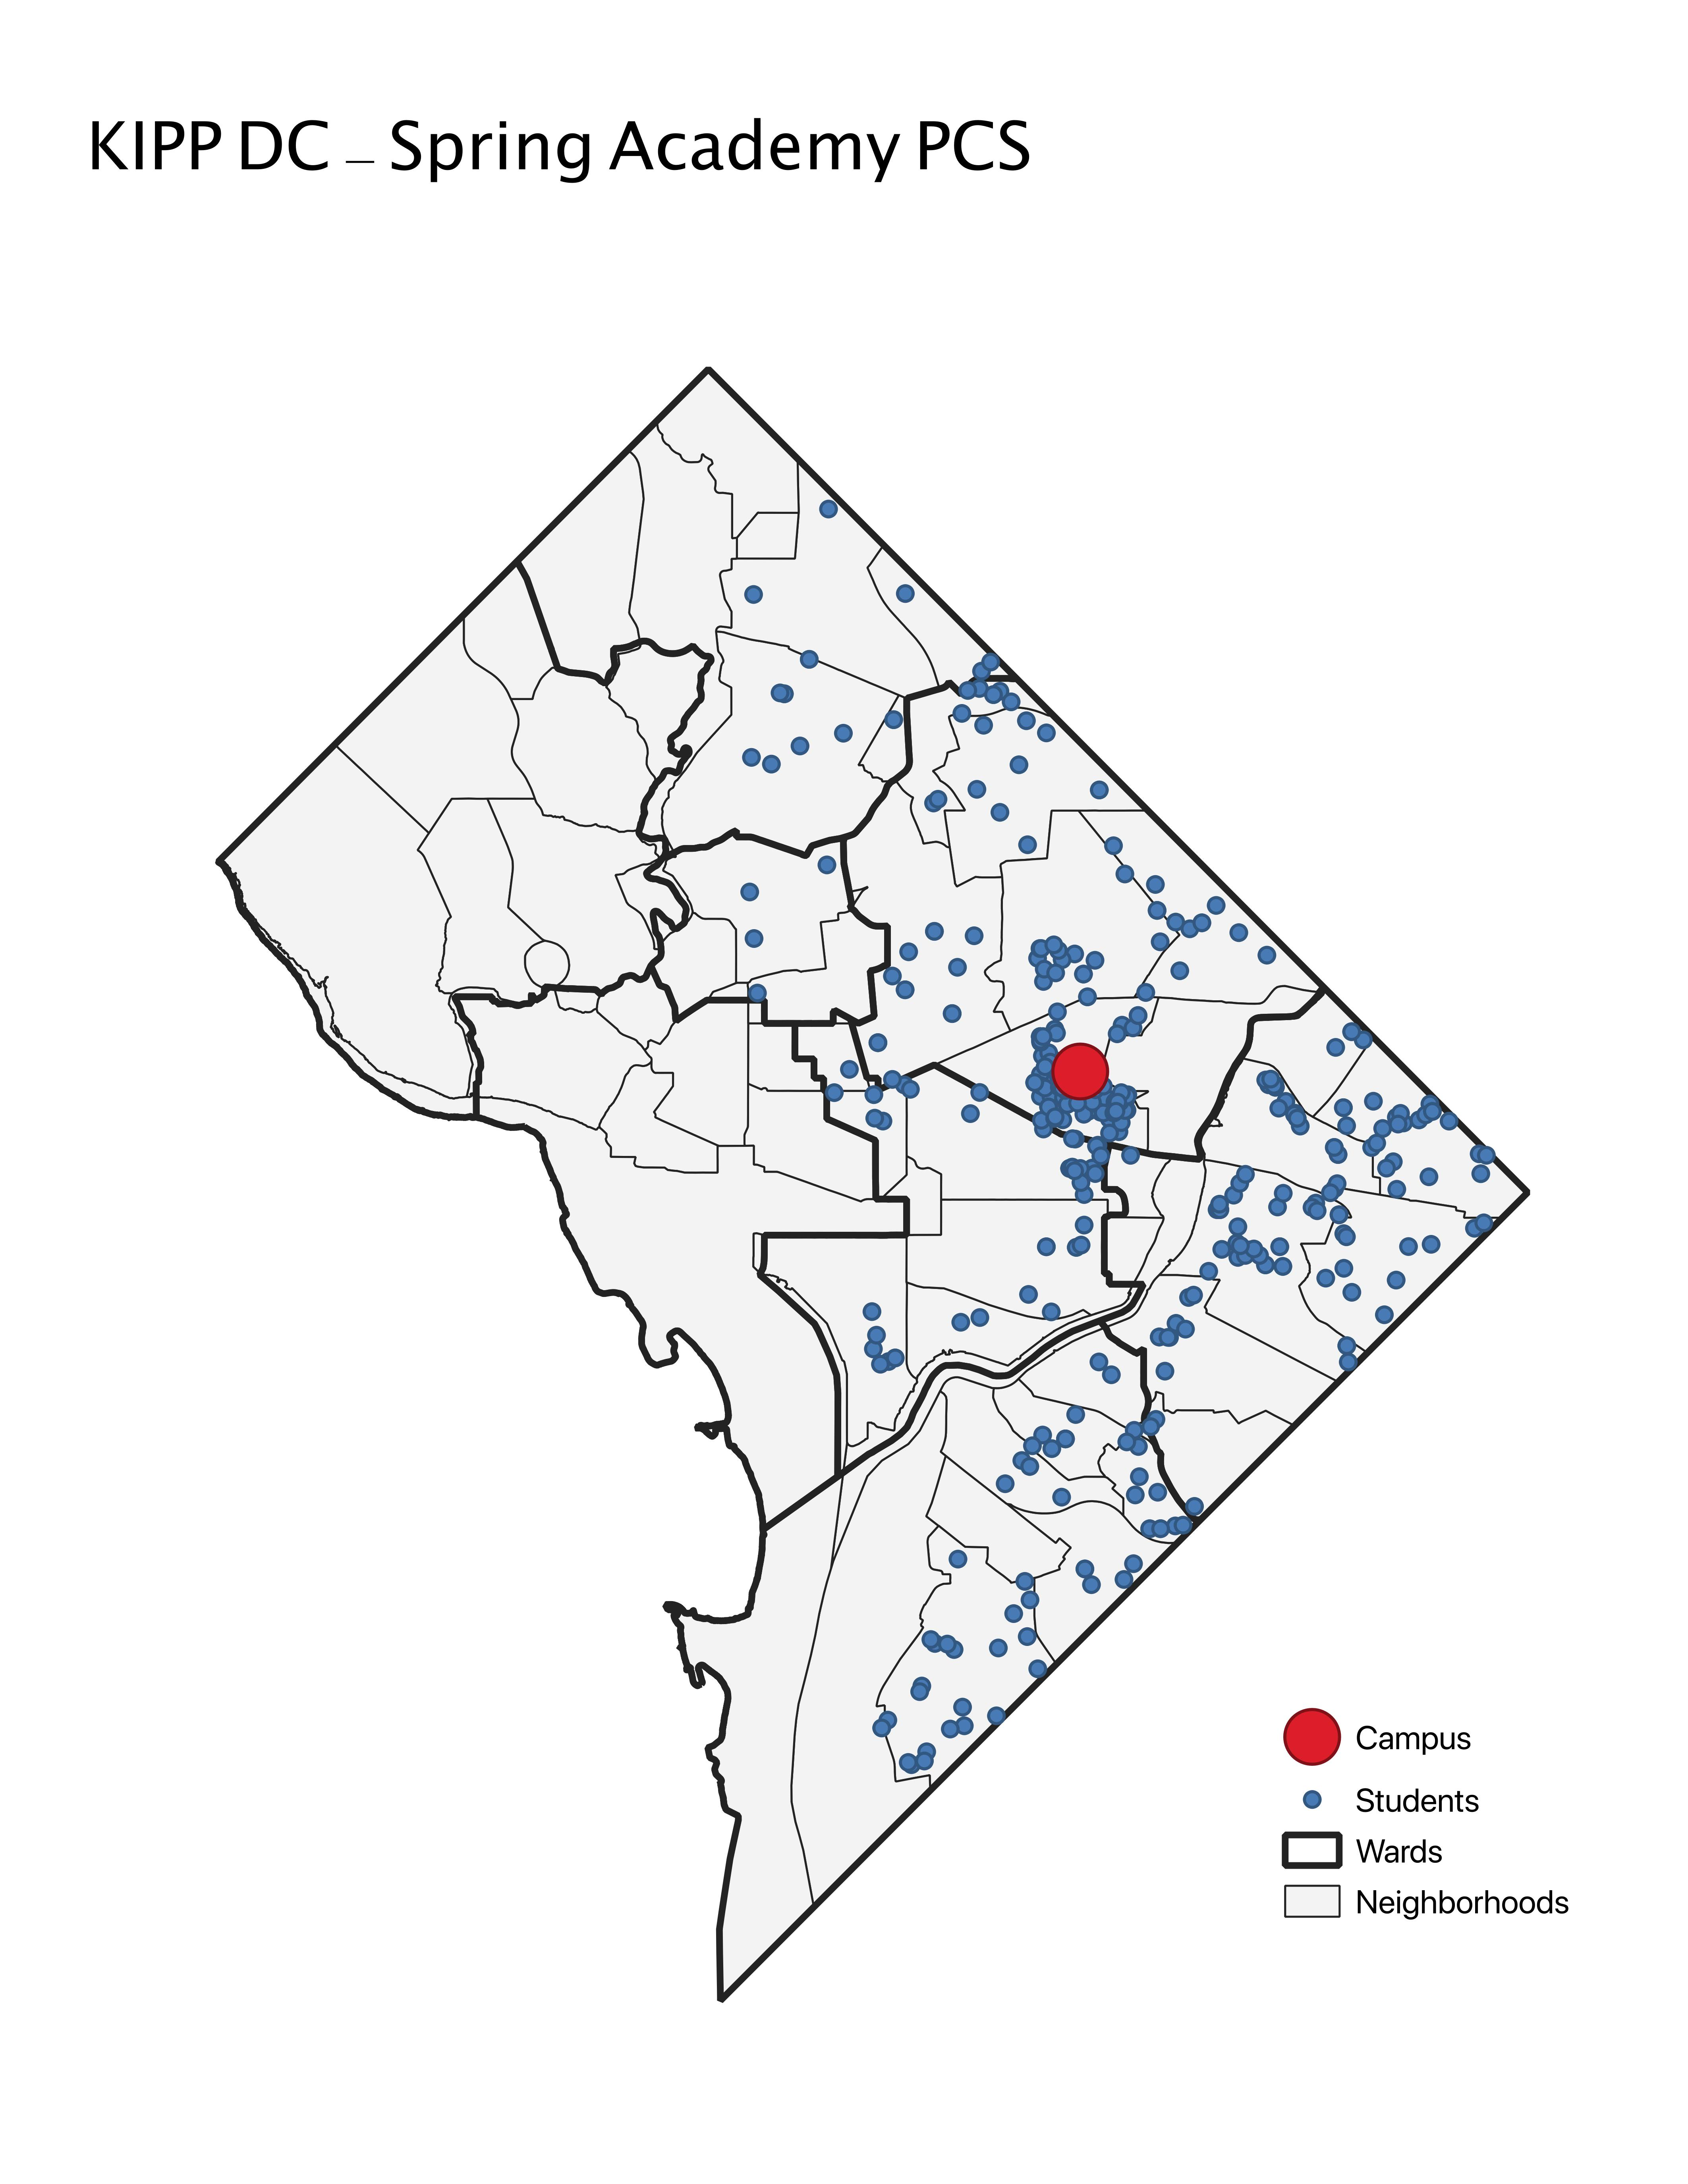 KIPP DC - Spring Academy PCS 2019 Student Location Map.jpeg